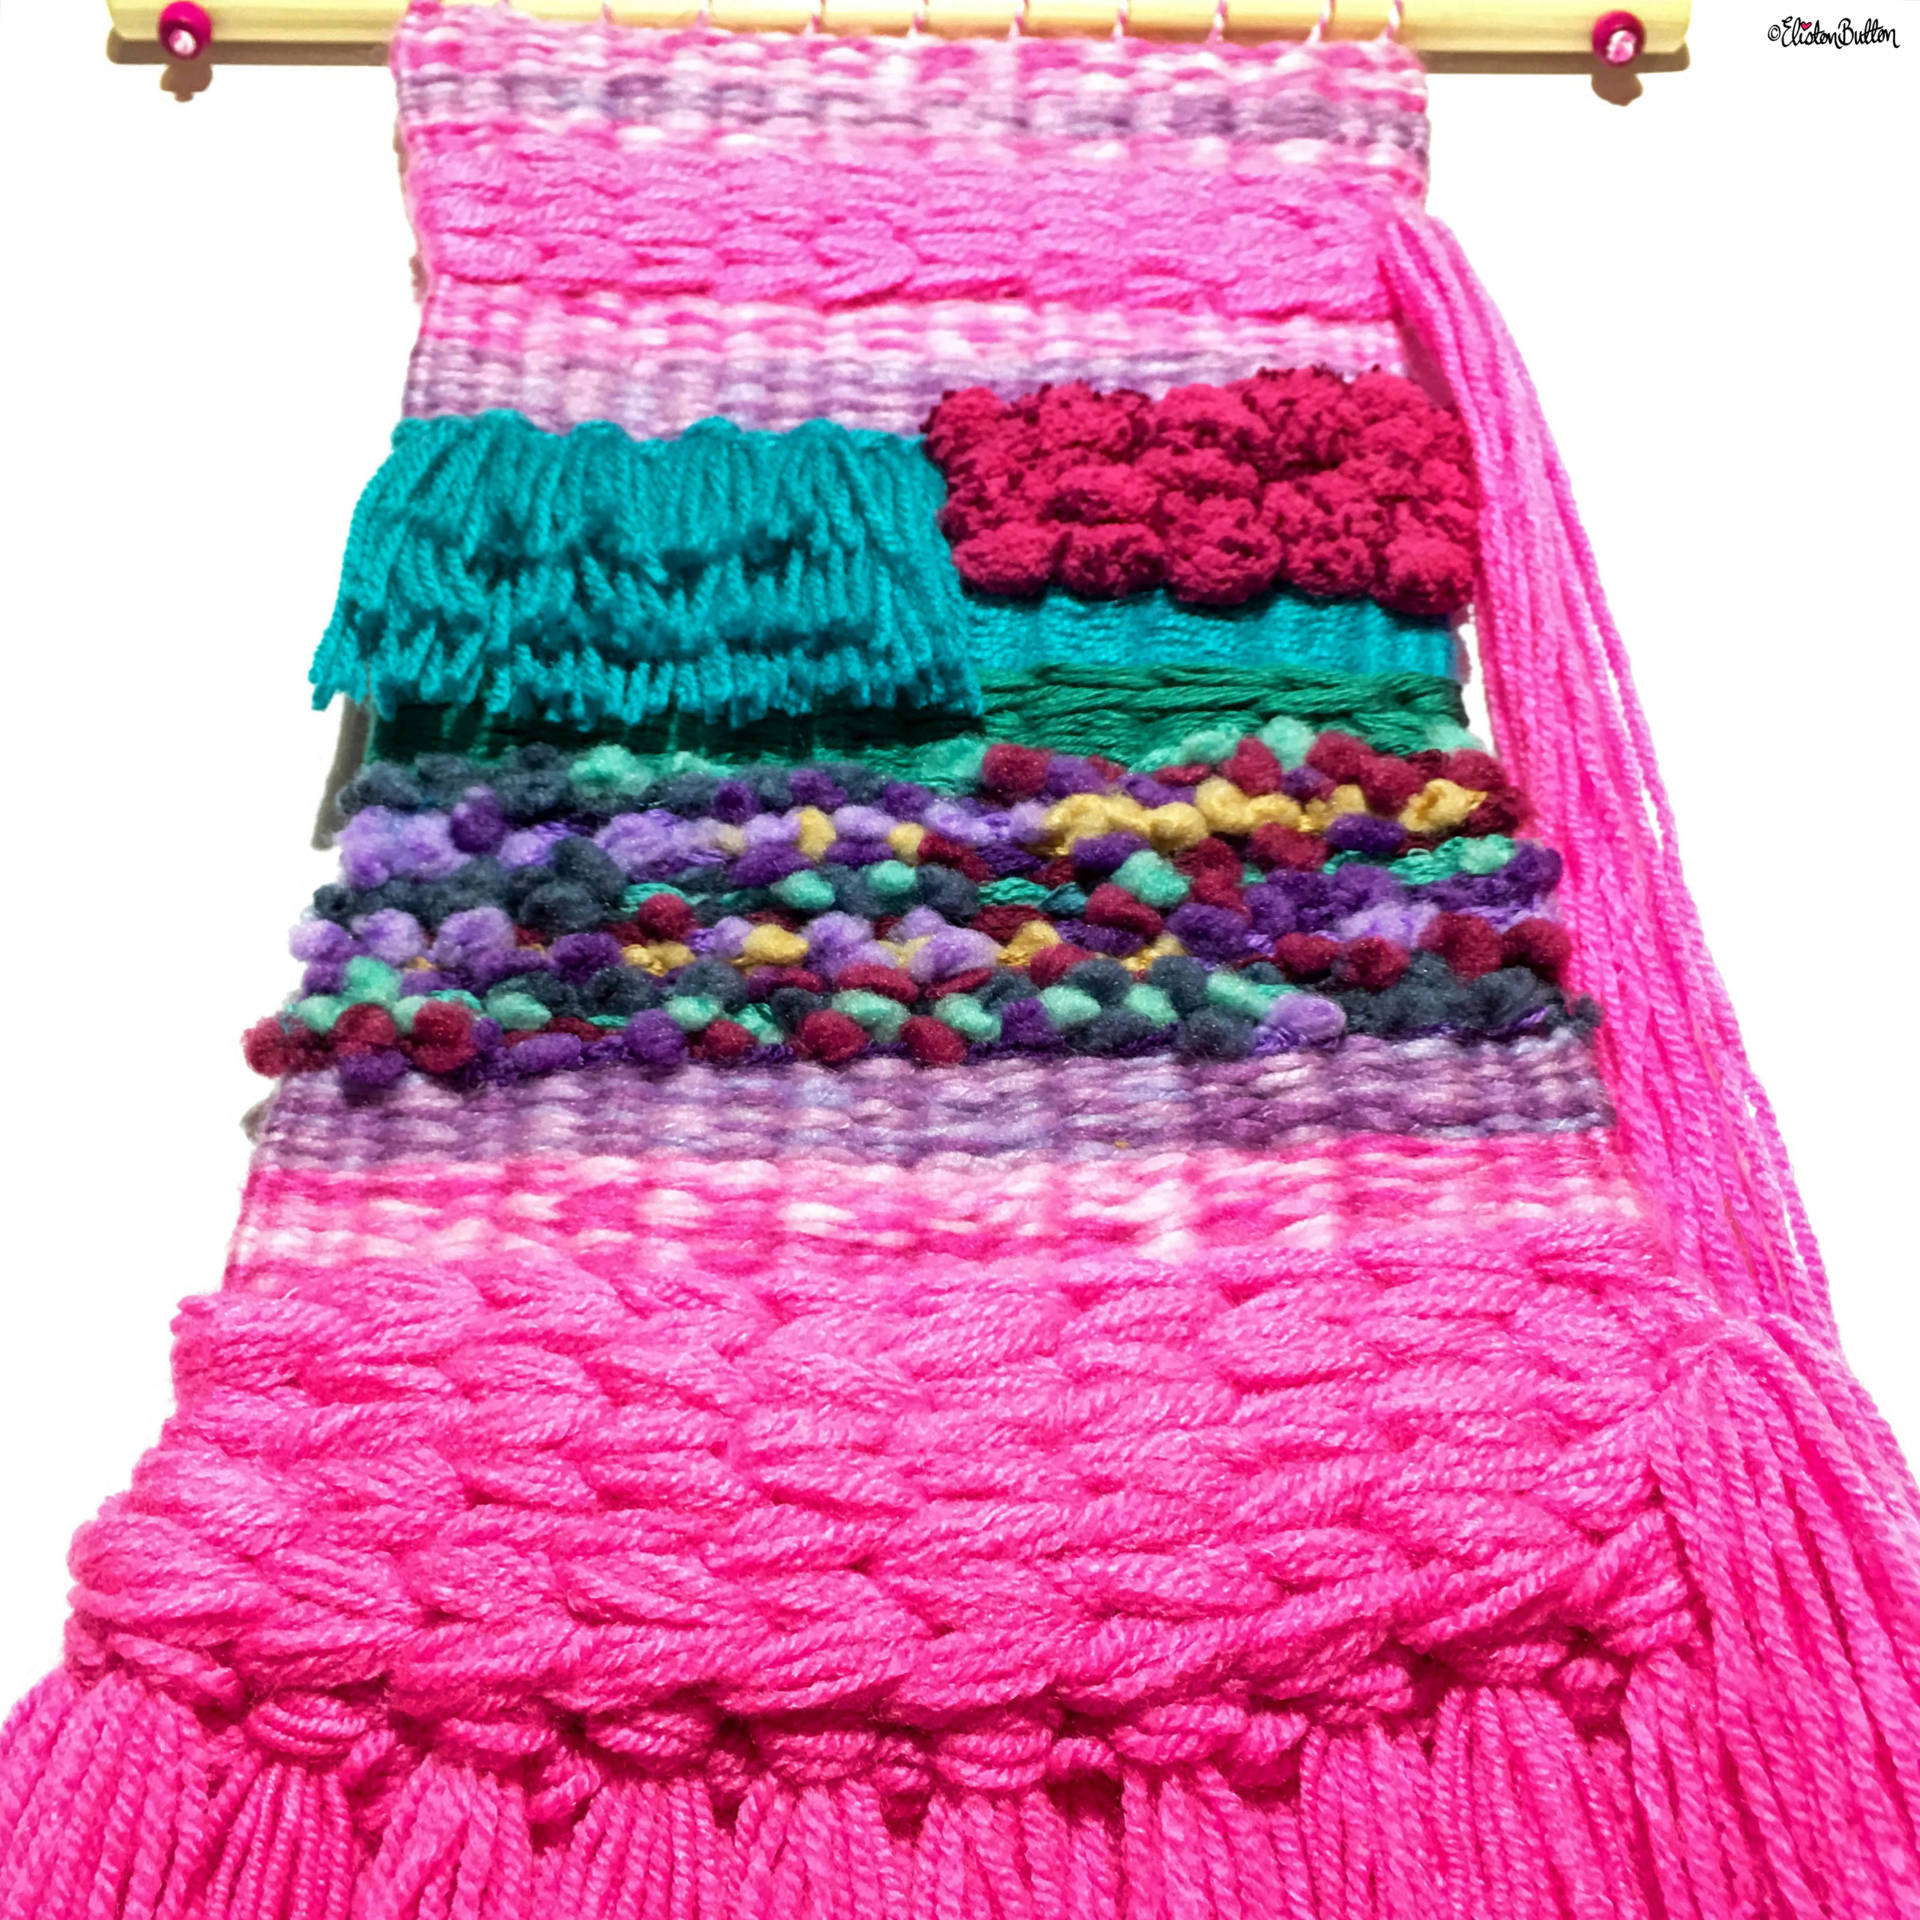 Rainbow, Pink and Turquoise Large Woven Wall Hanging by Eliston Button - Eliston Button is Four! at www.elistonbutton.com - Eliston Button - That Crafty Kid – Art, Design, Craft & Adventure.